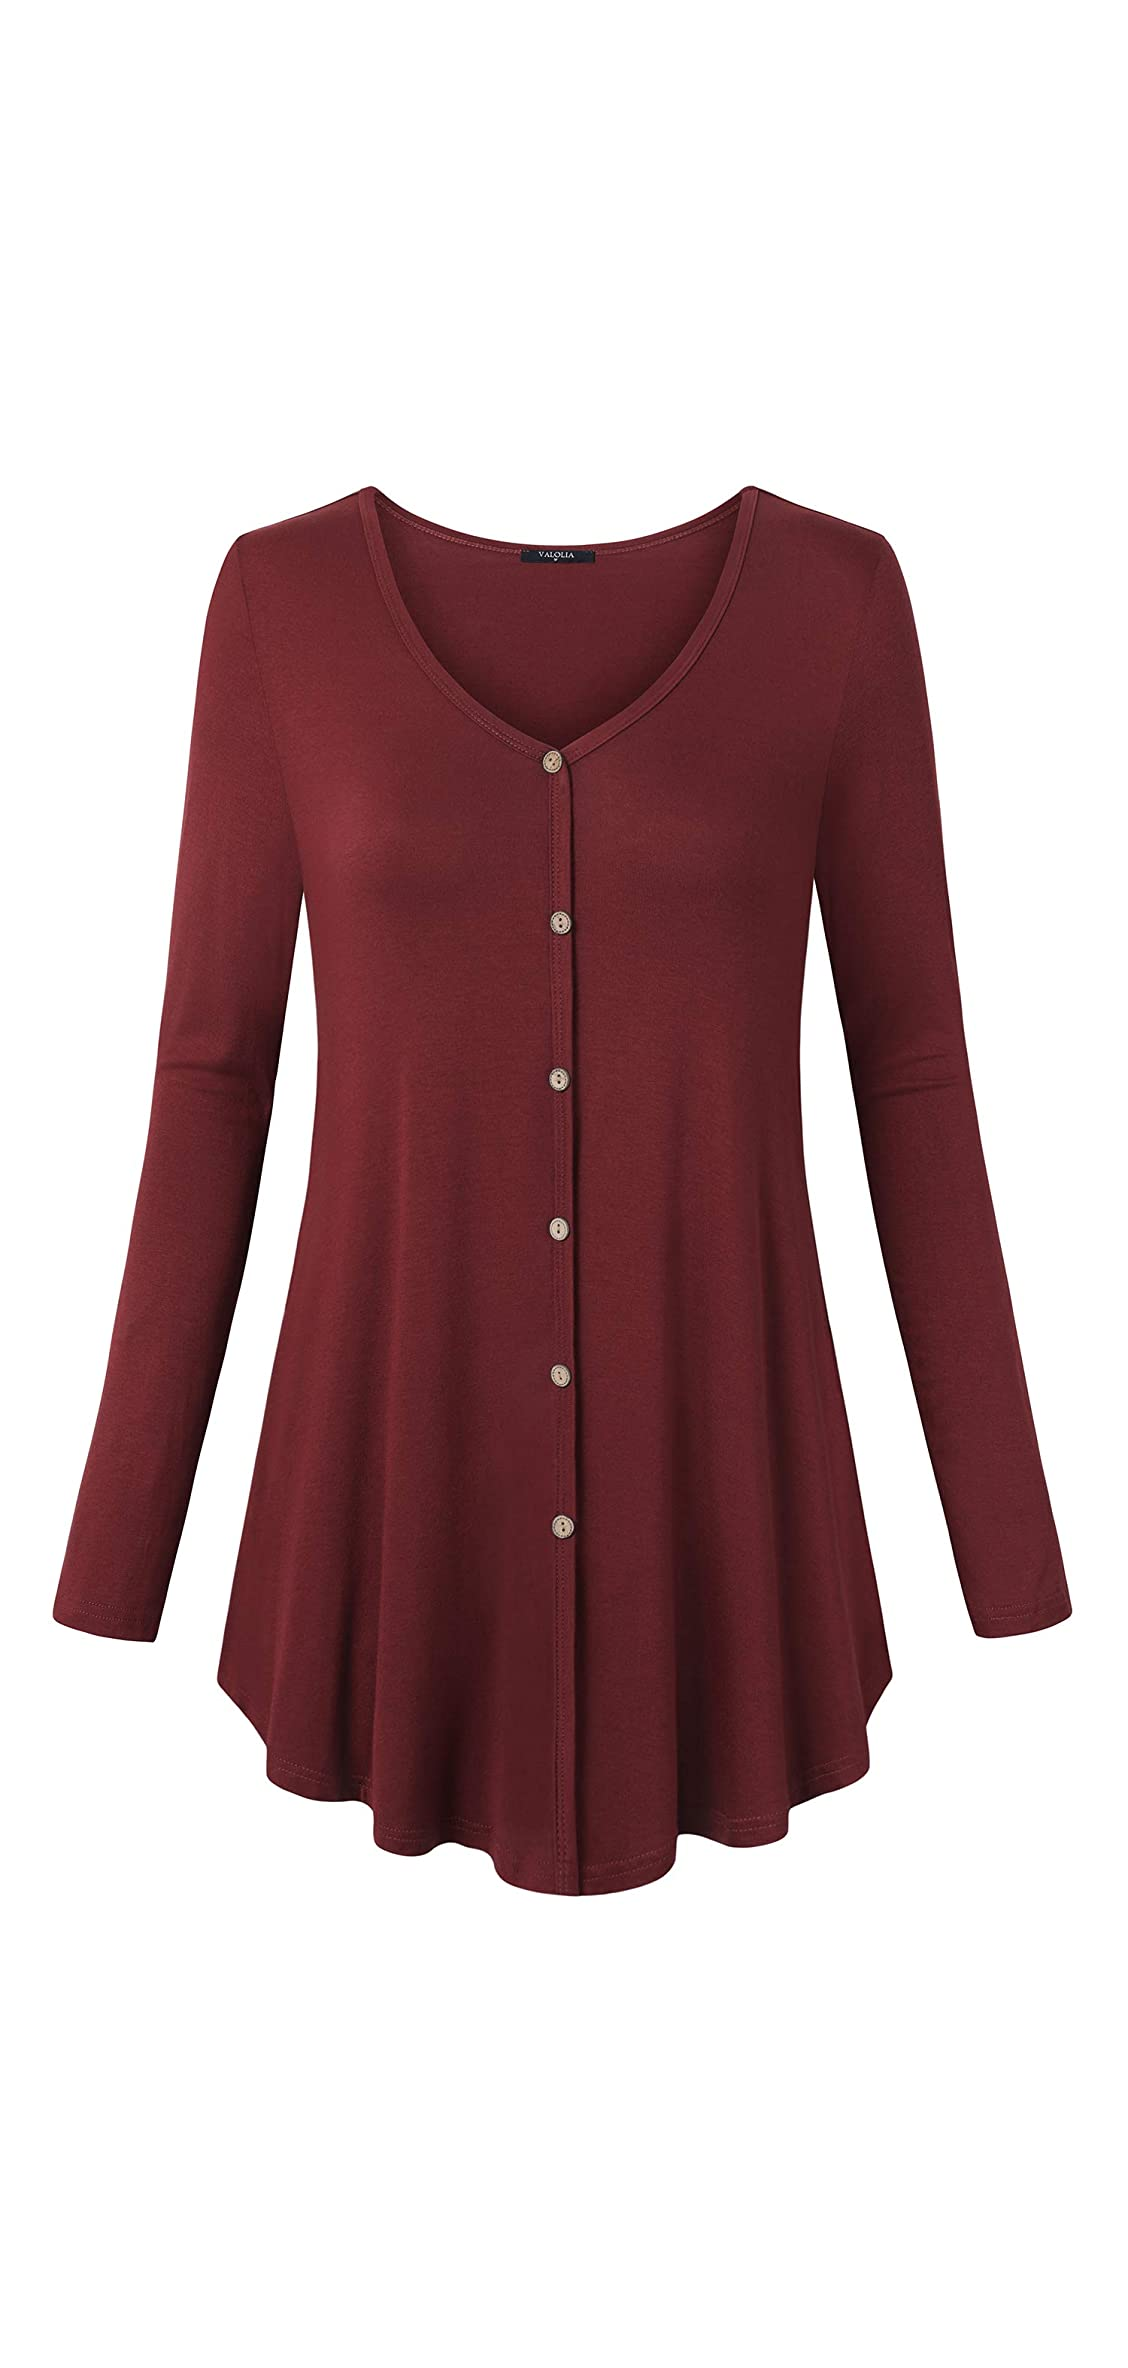 Women's Casual V Neck Long Length T Shirts Button Flare